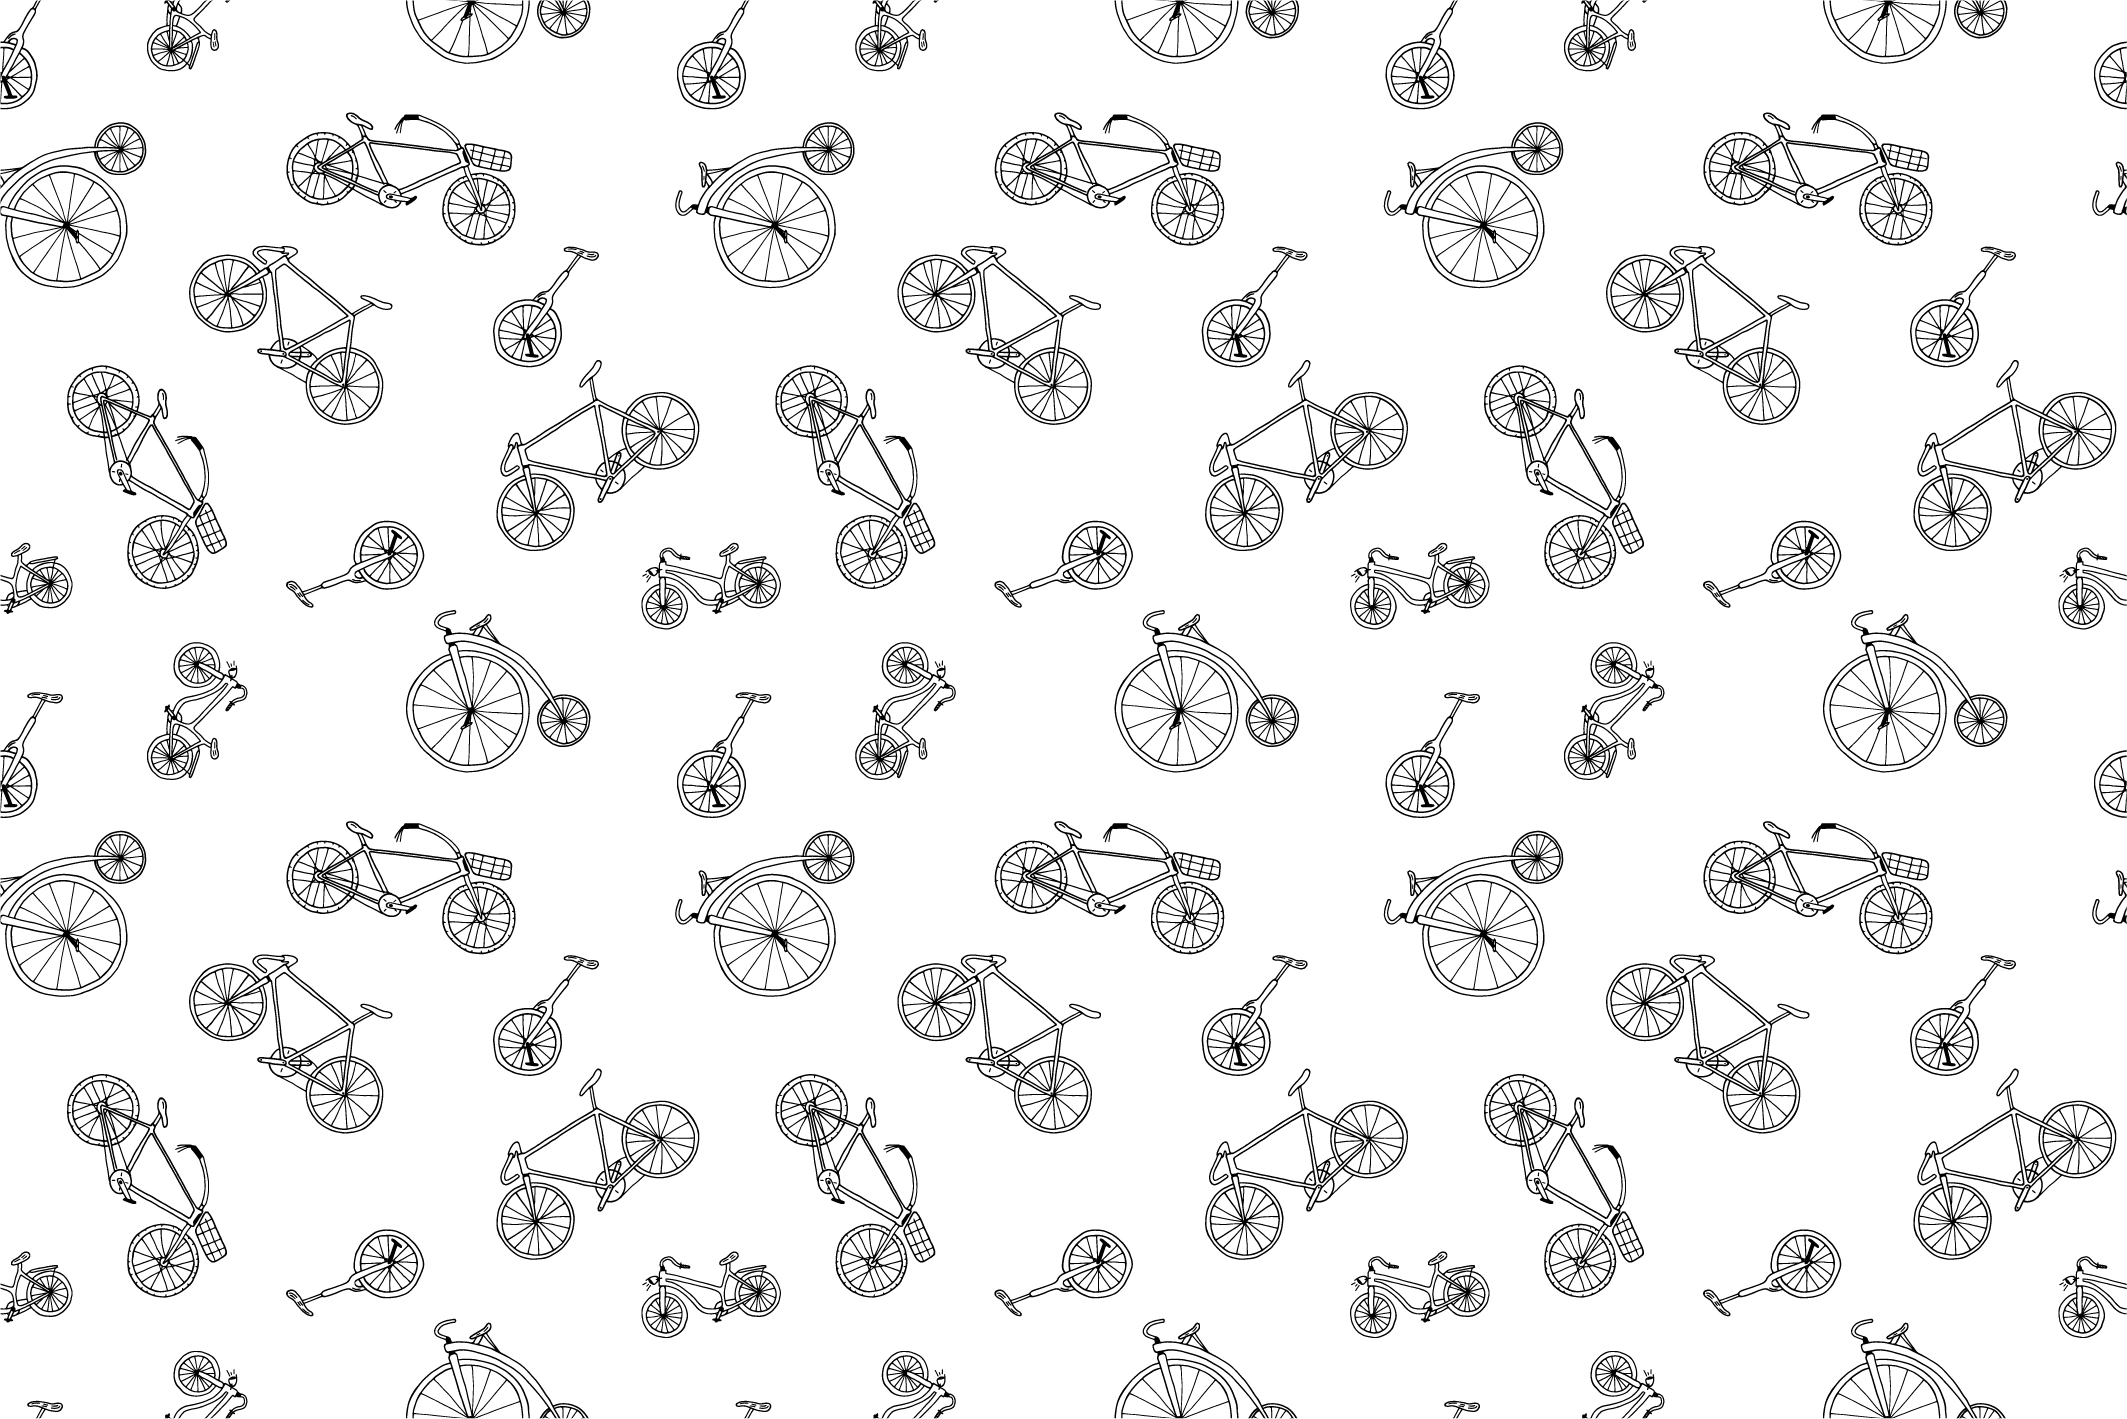 Bicycle collection in doodle style example image 3